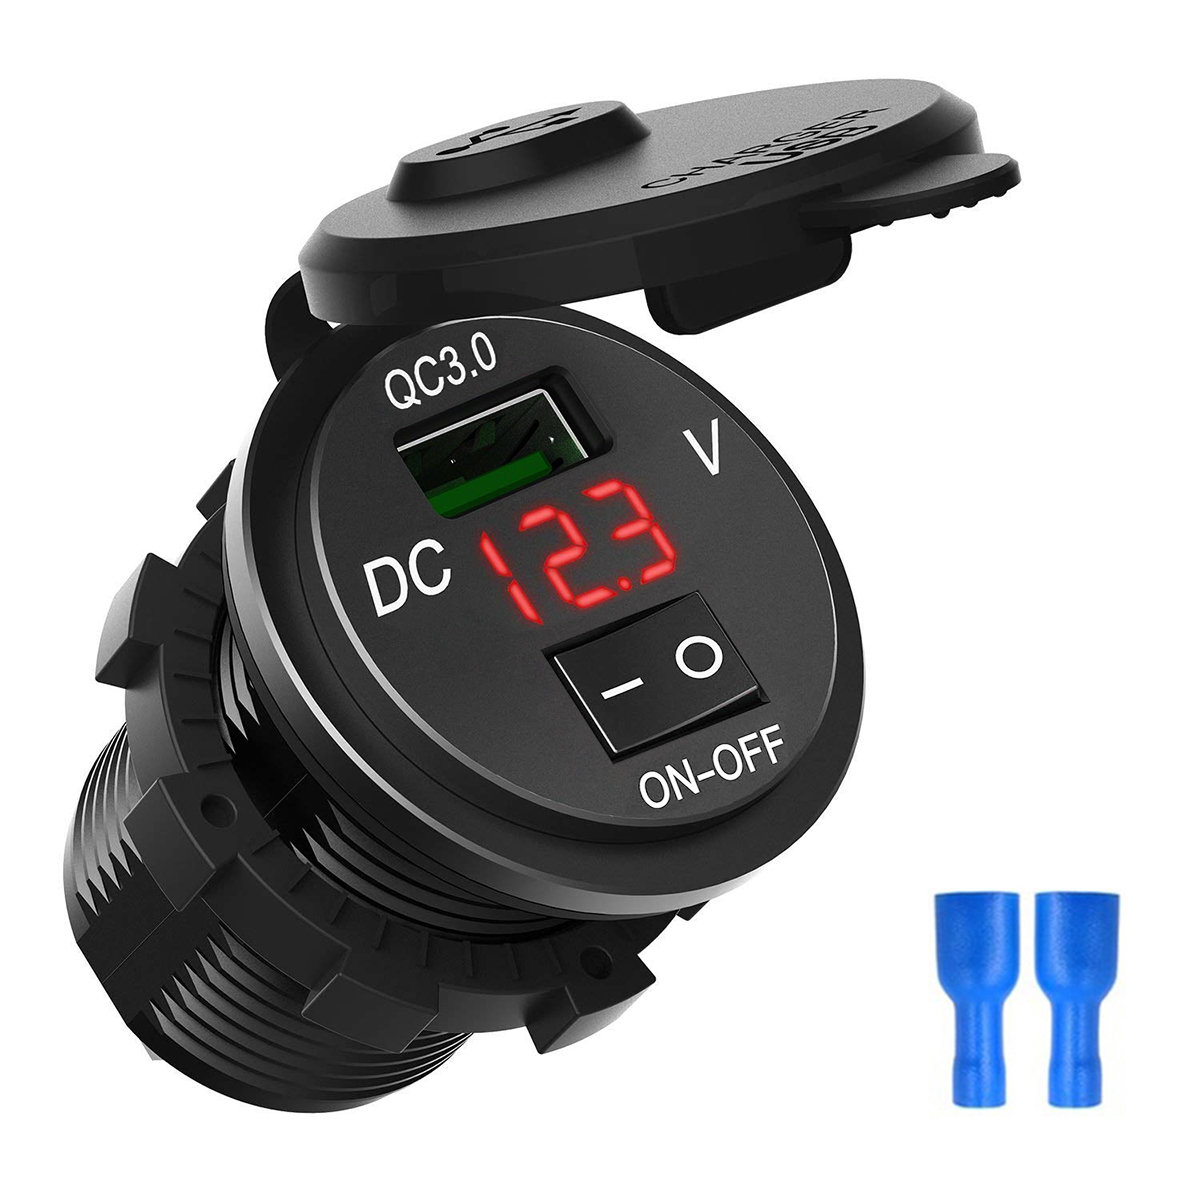 Quick Charge 3.0 USB Car Charger Socket Digital Display Voltmeter  ON-OFF Switch For Car Marine ATV Motorcycle